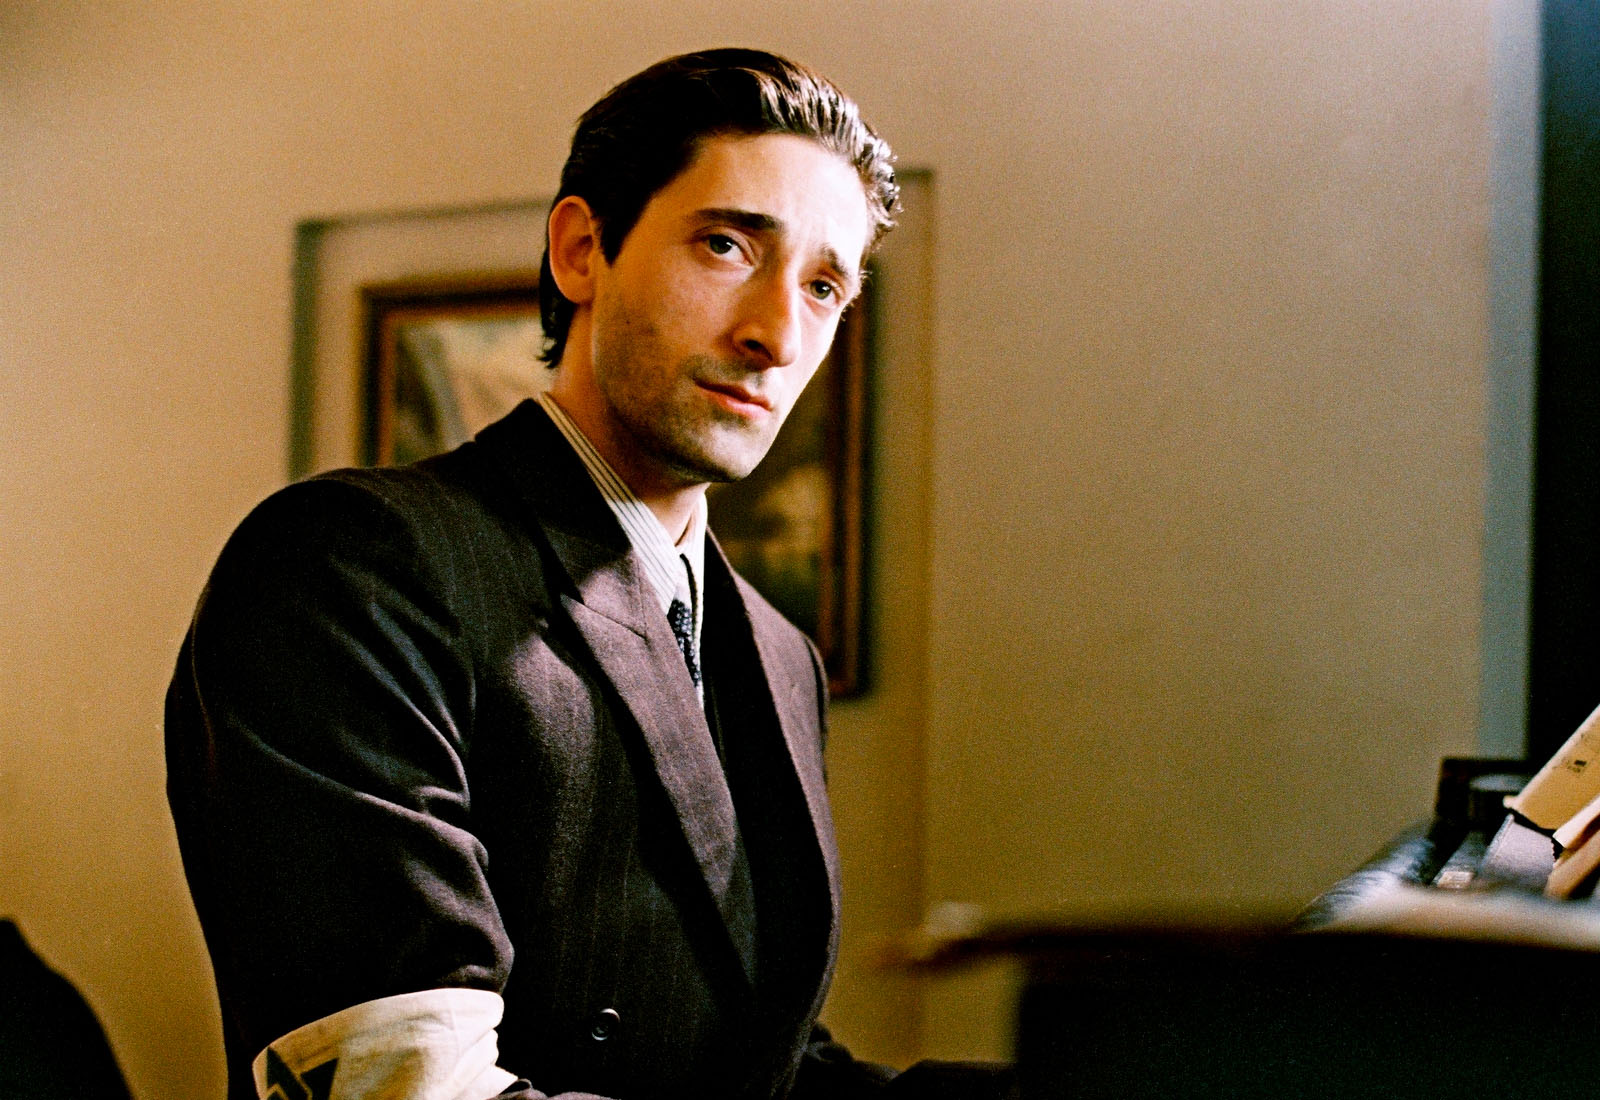 The pianist follows a real life story